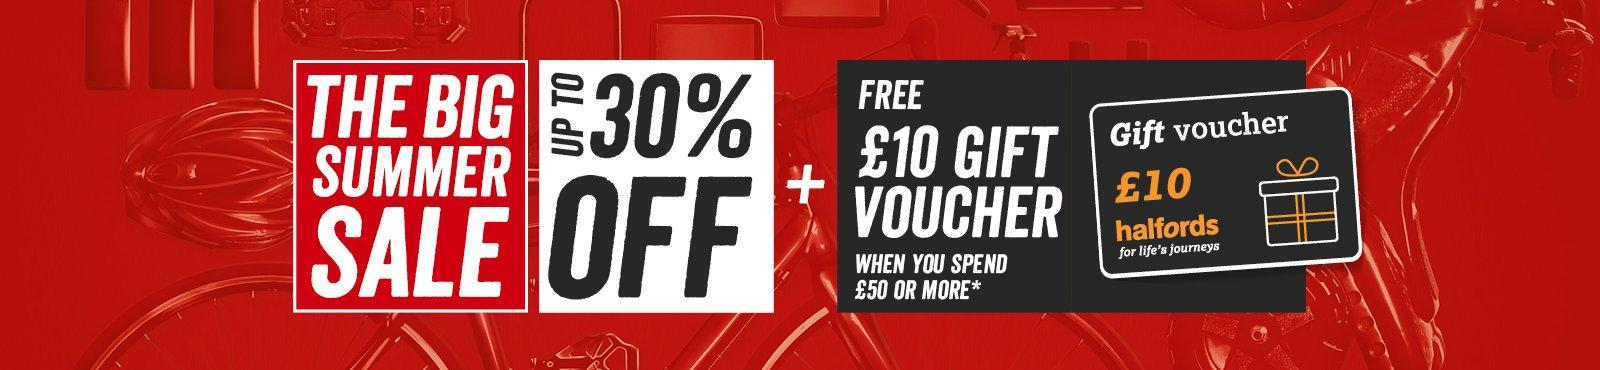 Free £10 gift voucher when you spend £50 or more